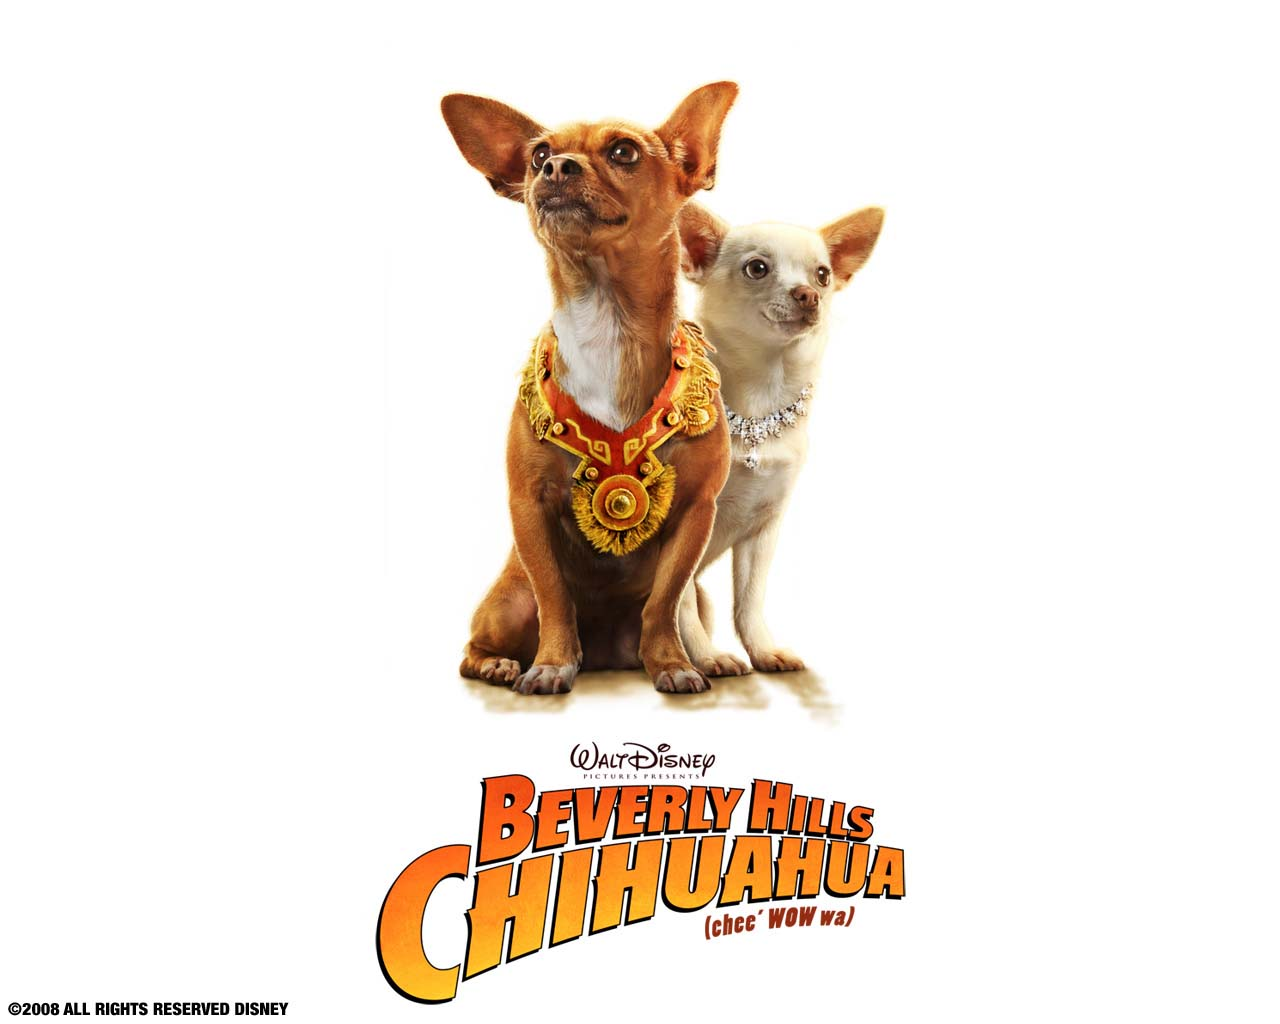 BEVERLY HILLS CHIHUAHUA 2: THE FAMILY JUST GOT BIGGER WALLPAPERS